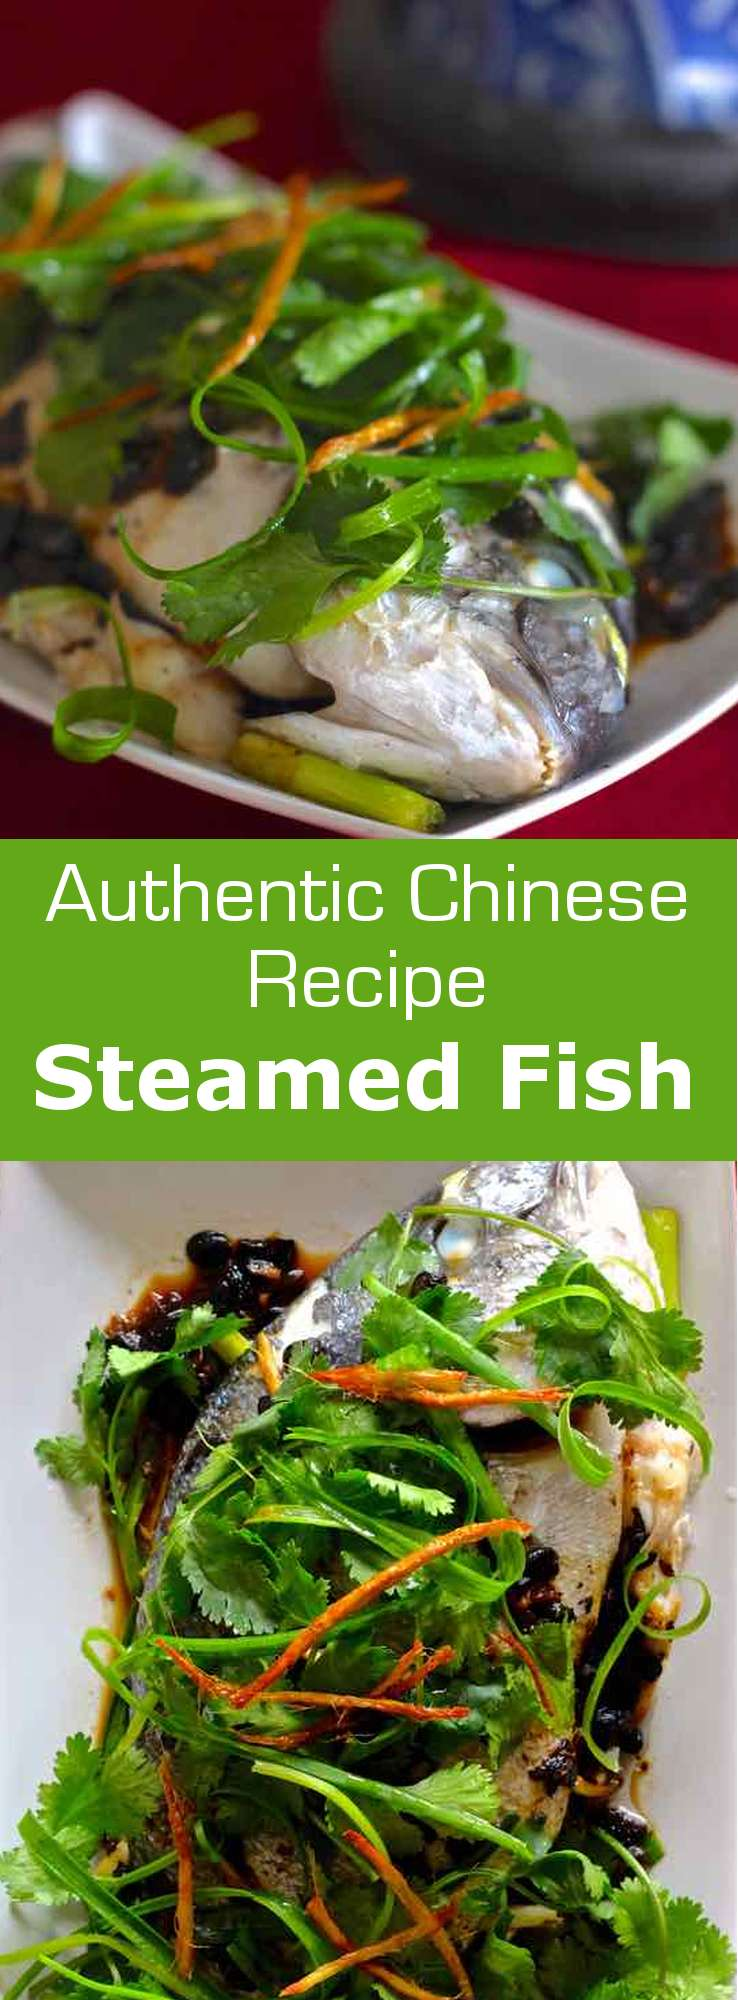 Steamed fish is one of the most emblematic dishes of the Chinese New Year. A dish that brings good luck and symbolizes abundance and prosperity. #China #ChineseNewYear #196flavors